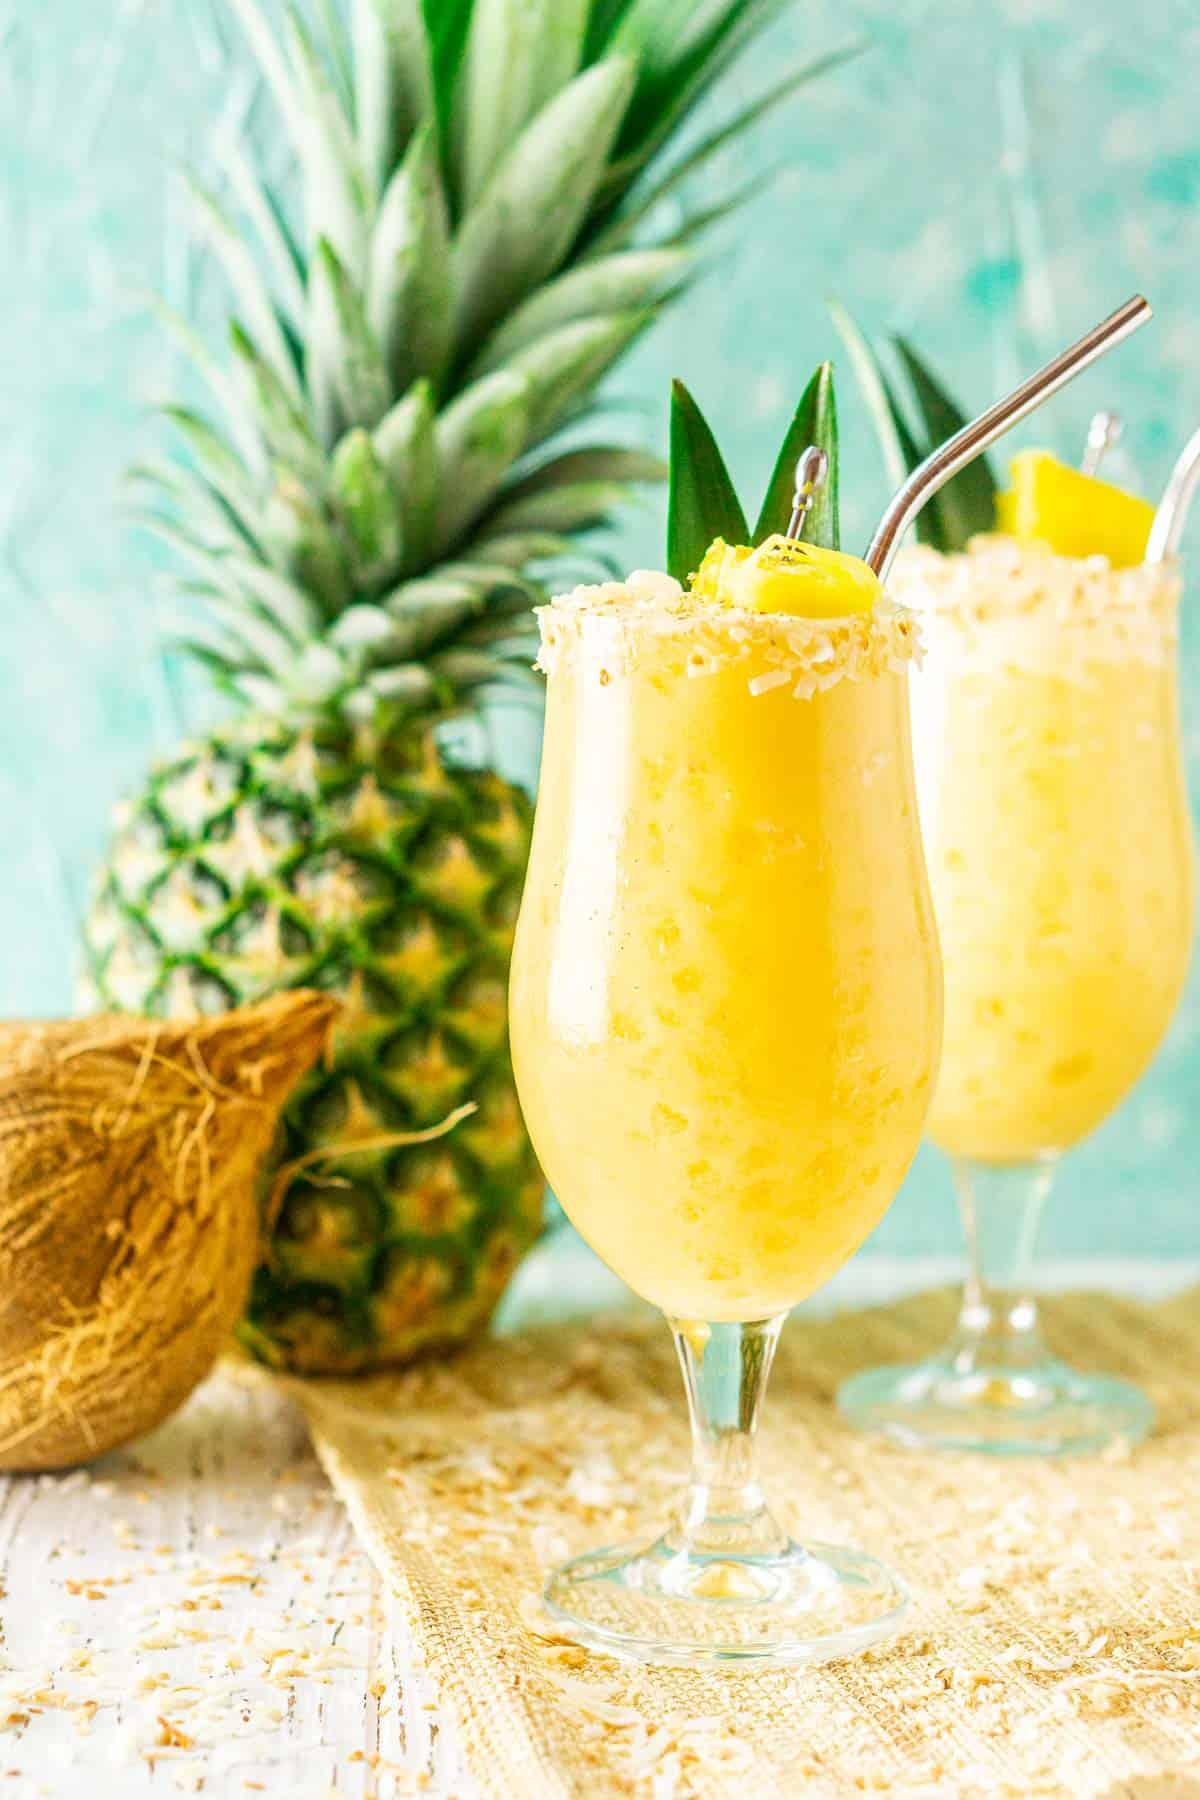 The painkiller cocktails with a pineapple and coconut behind them.